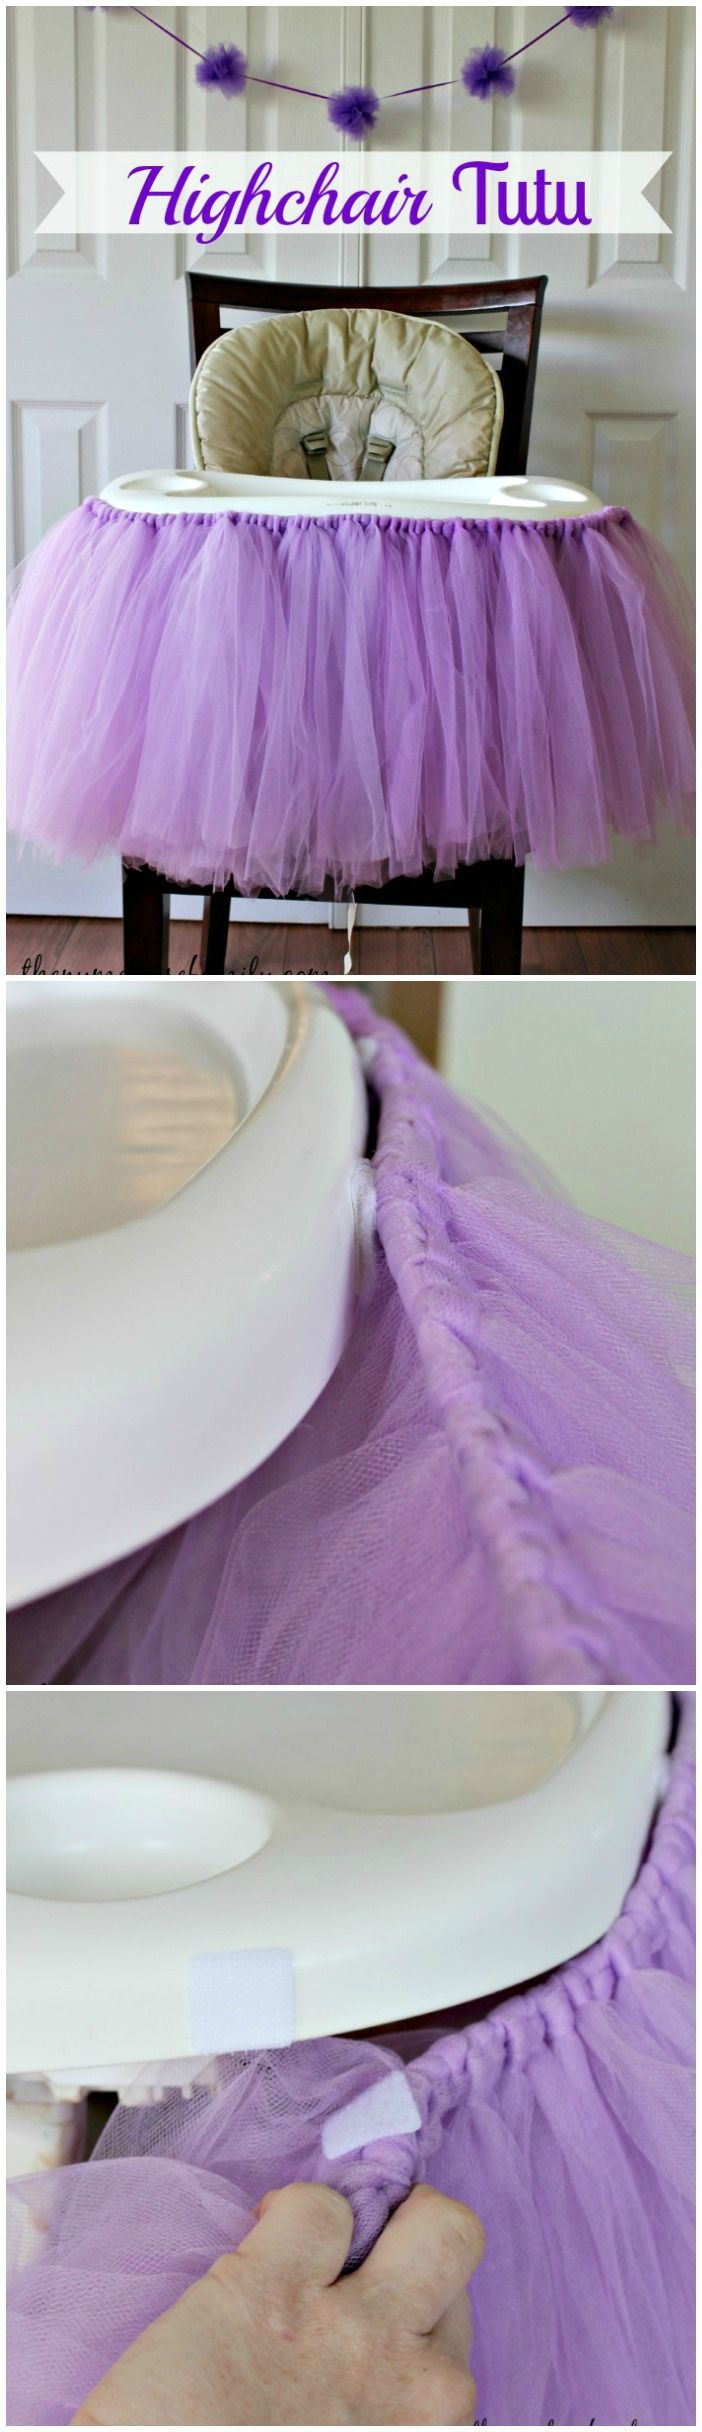 No Sew Highchair Tutu perfect for 1st Birthday parties! #firstbirthday: Safe, Highchair Tutu, 2Nd Birthday Parties, 1St Bday, High Chair Tutu, 1St Birthday, First Birthday, Baby Girls, High Chairs Tutu